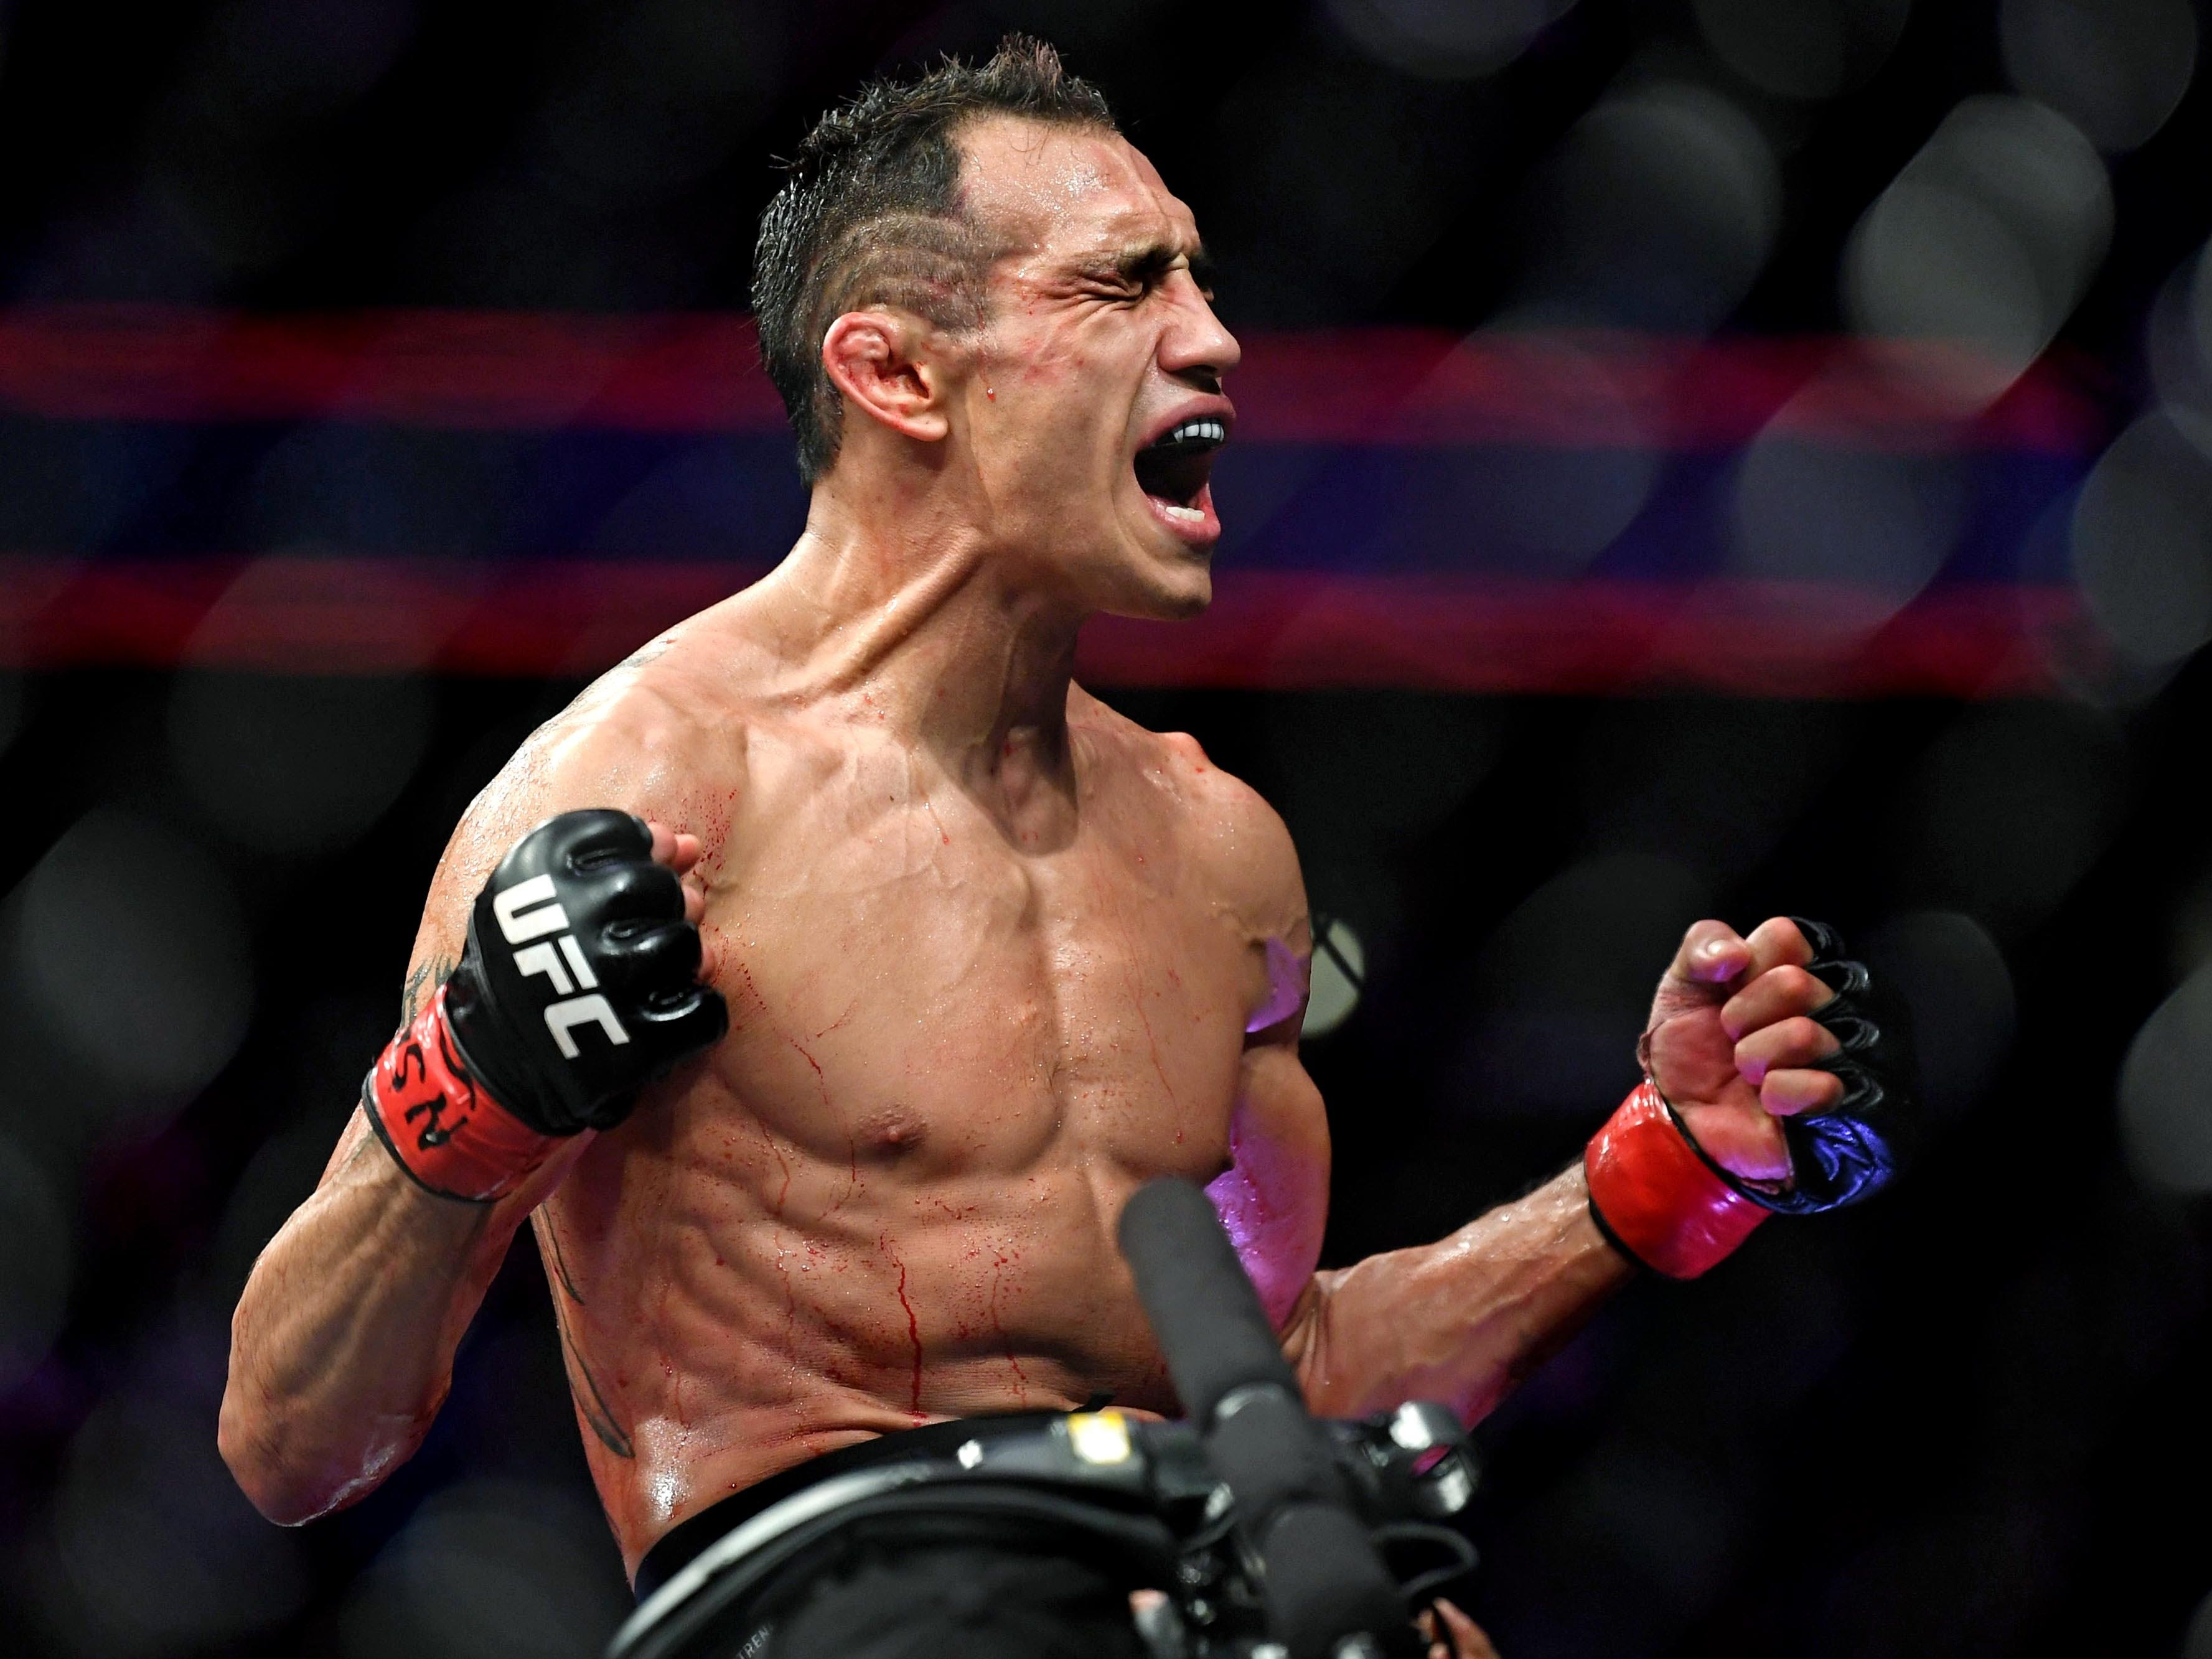 Tony Ferguson celebrates after beating Anthony Pettis via an injury TKO.